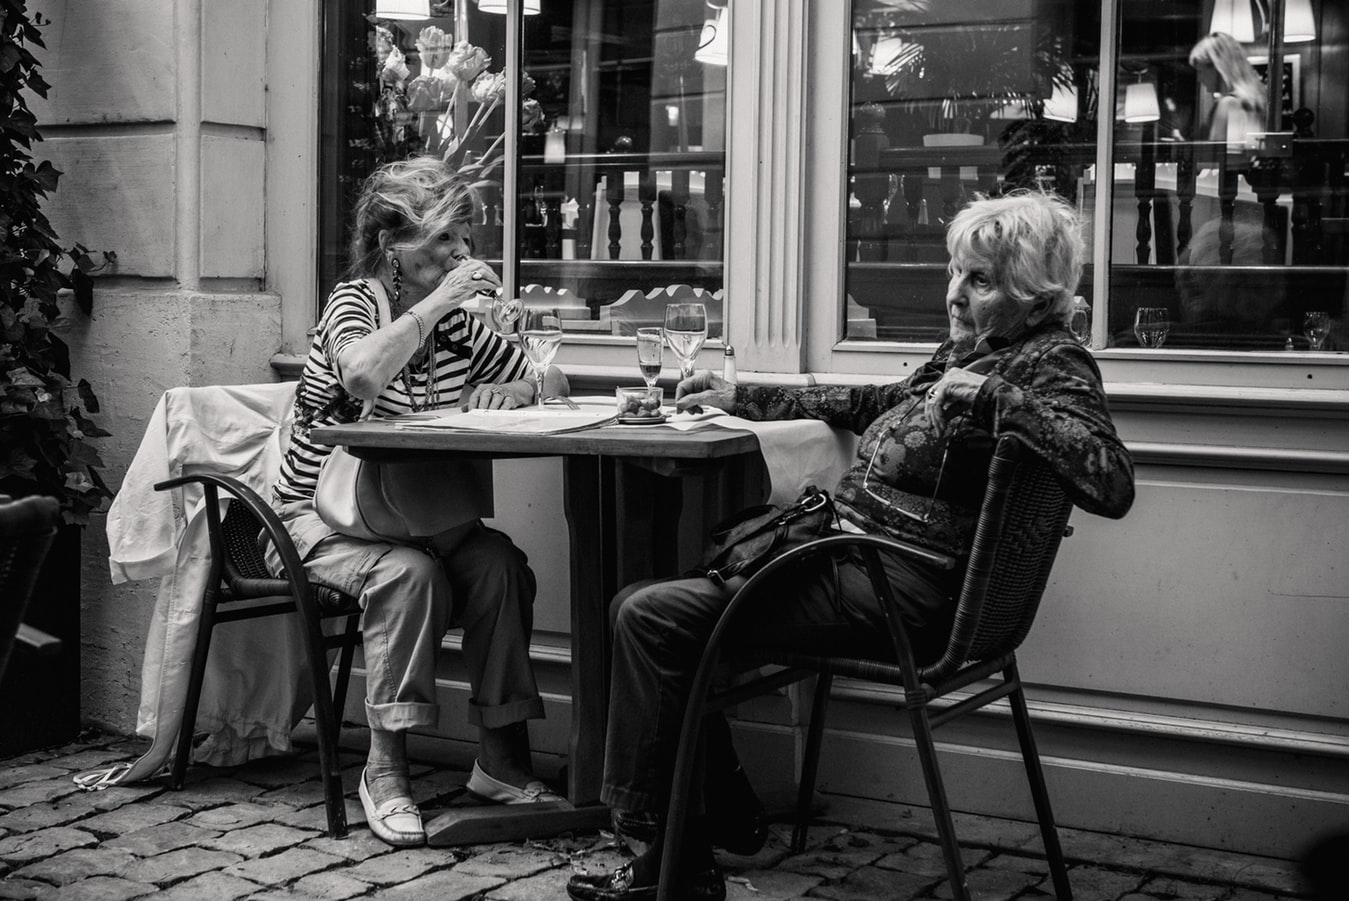 Two older women sitting outside and drinking wine. Alcohol use in seniors is on the rise